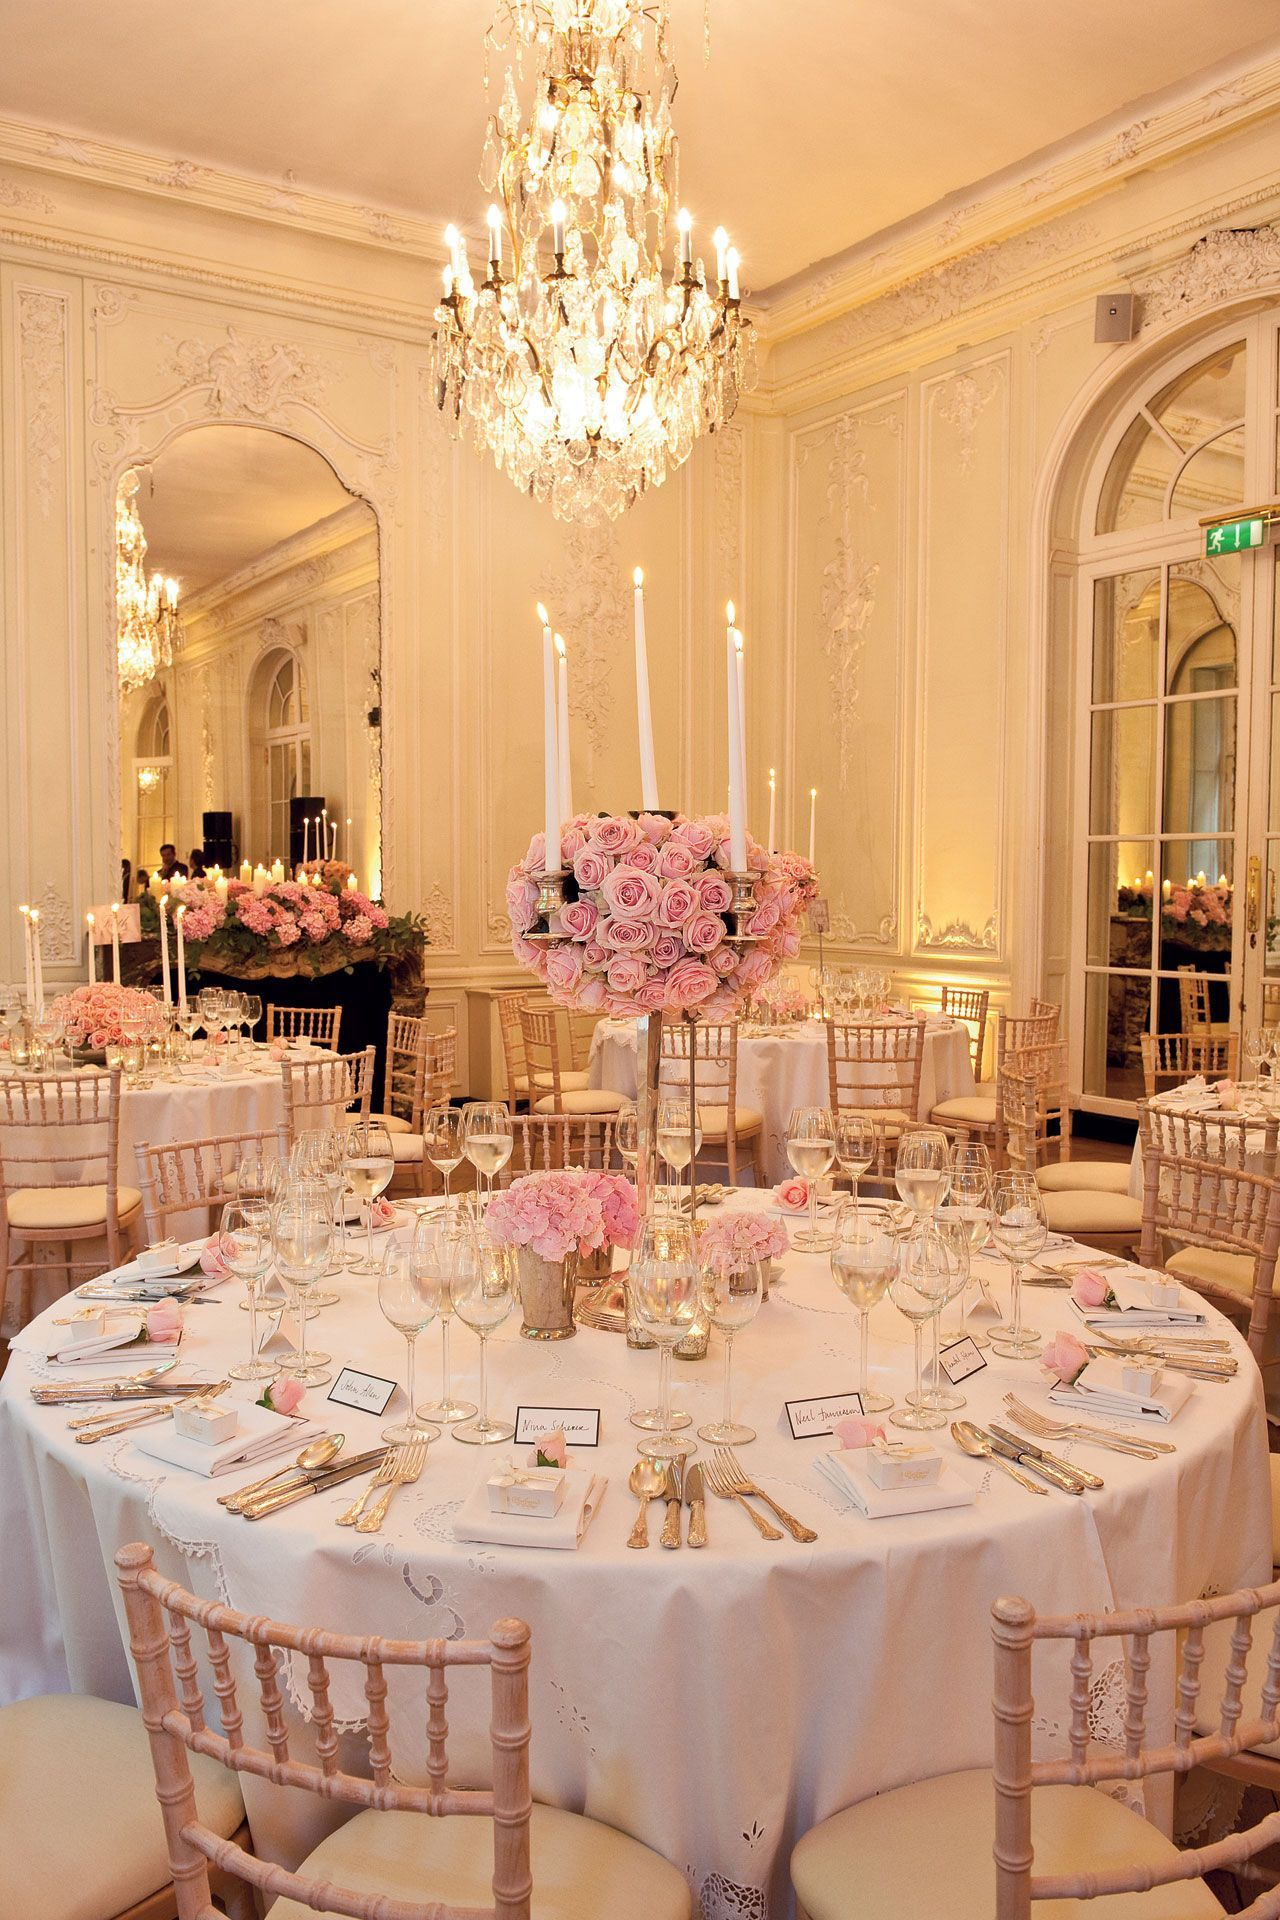 35 Amazing Wedding Decoration Ideas You Can Easily Replicate Wedding Decorations Wedding Reception Decorations Wedding Table